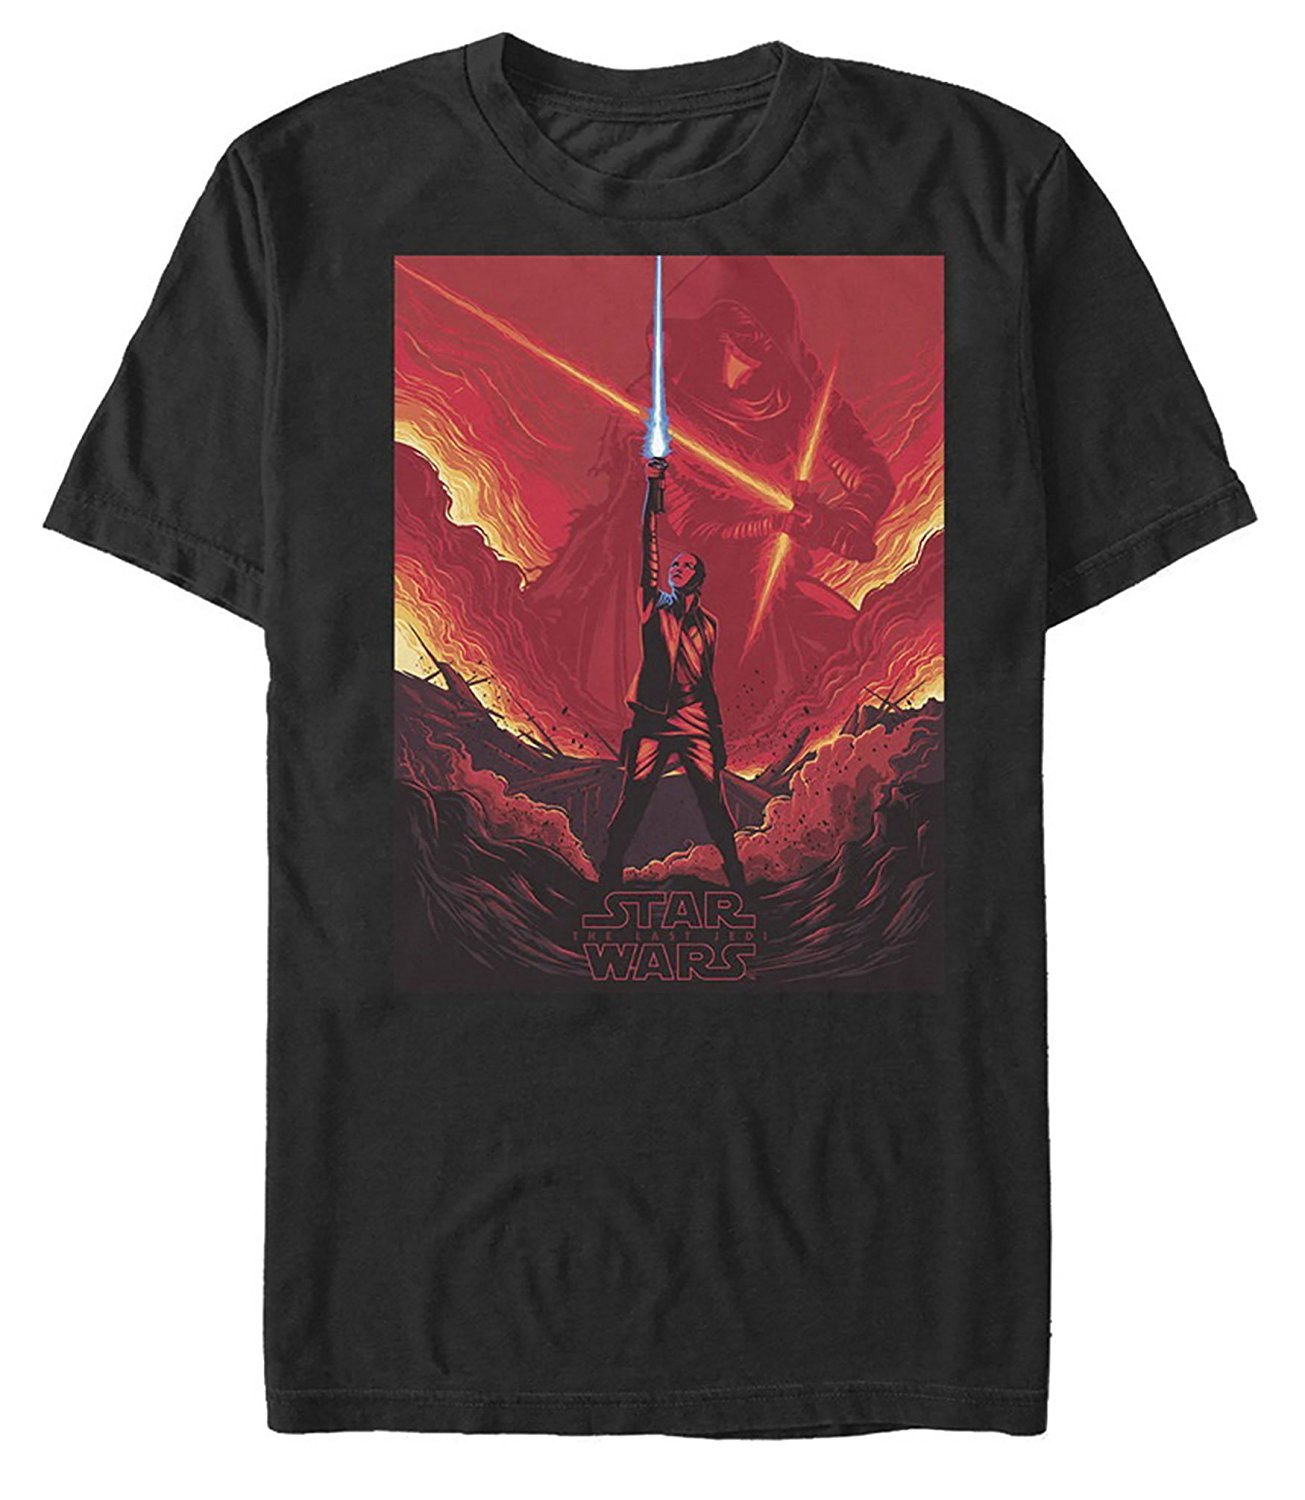 Star Wars The Last Jedi Rey Lightsaber Flames Mens Graphic T Shirt